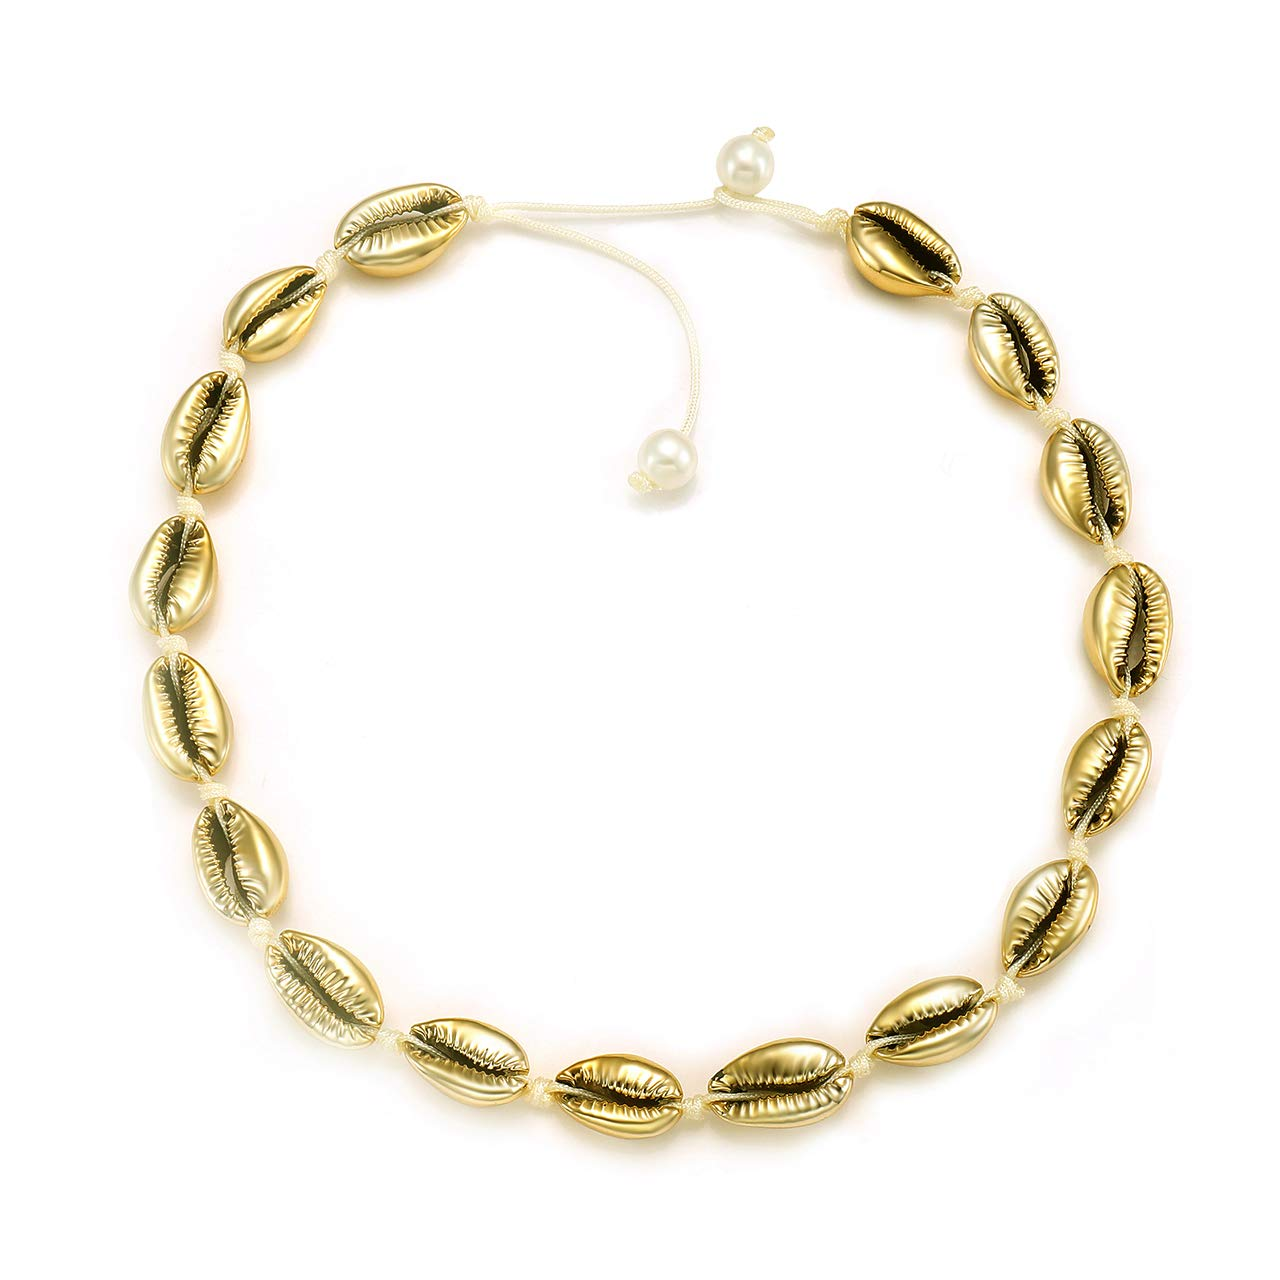 184f909d3fb02 HSWE Natural Cowrie Shell Choker Necklace Gold-Plated Sea Shell Necklace  Adjustable Cowry Charms Gilded Beaded Cord Rope Hemp Necklace Handmade Boho  ...